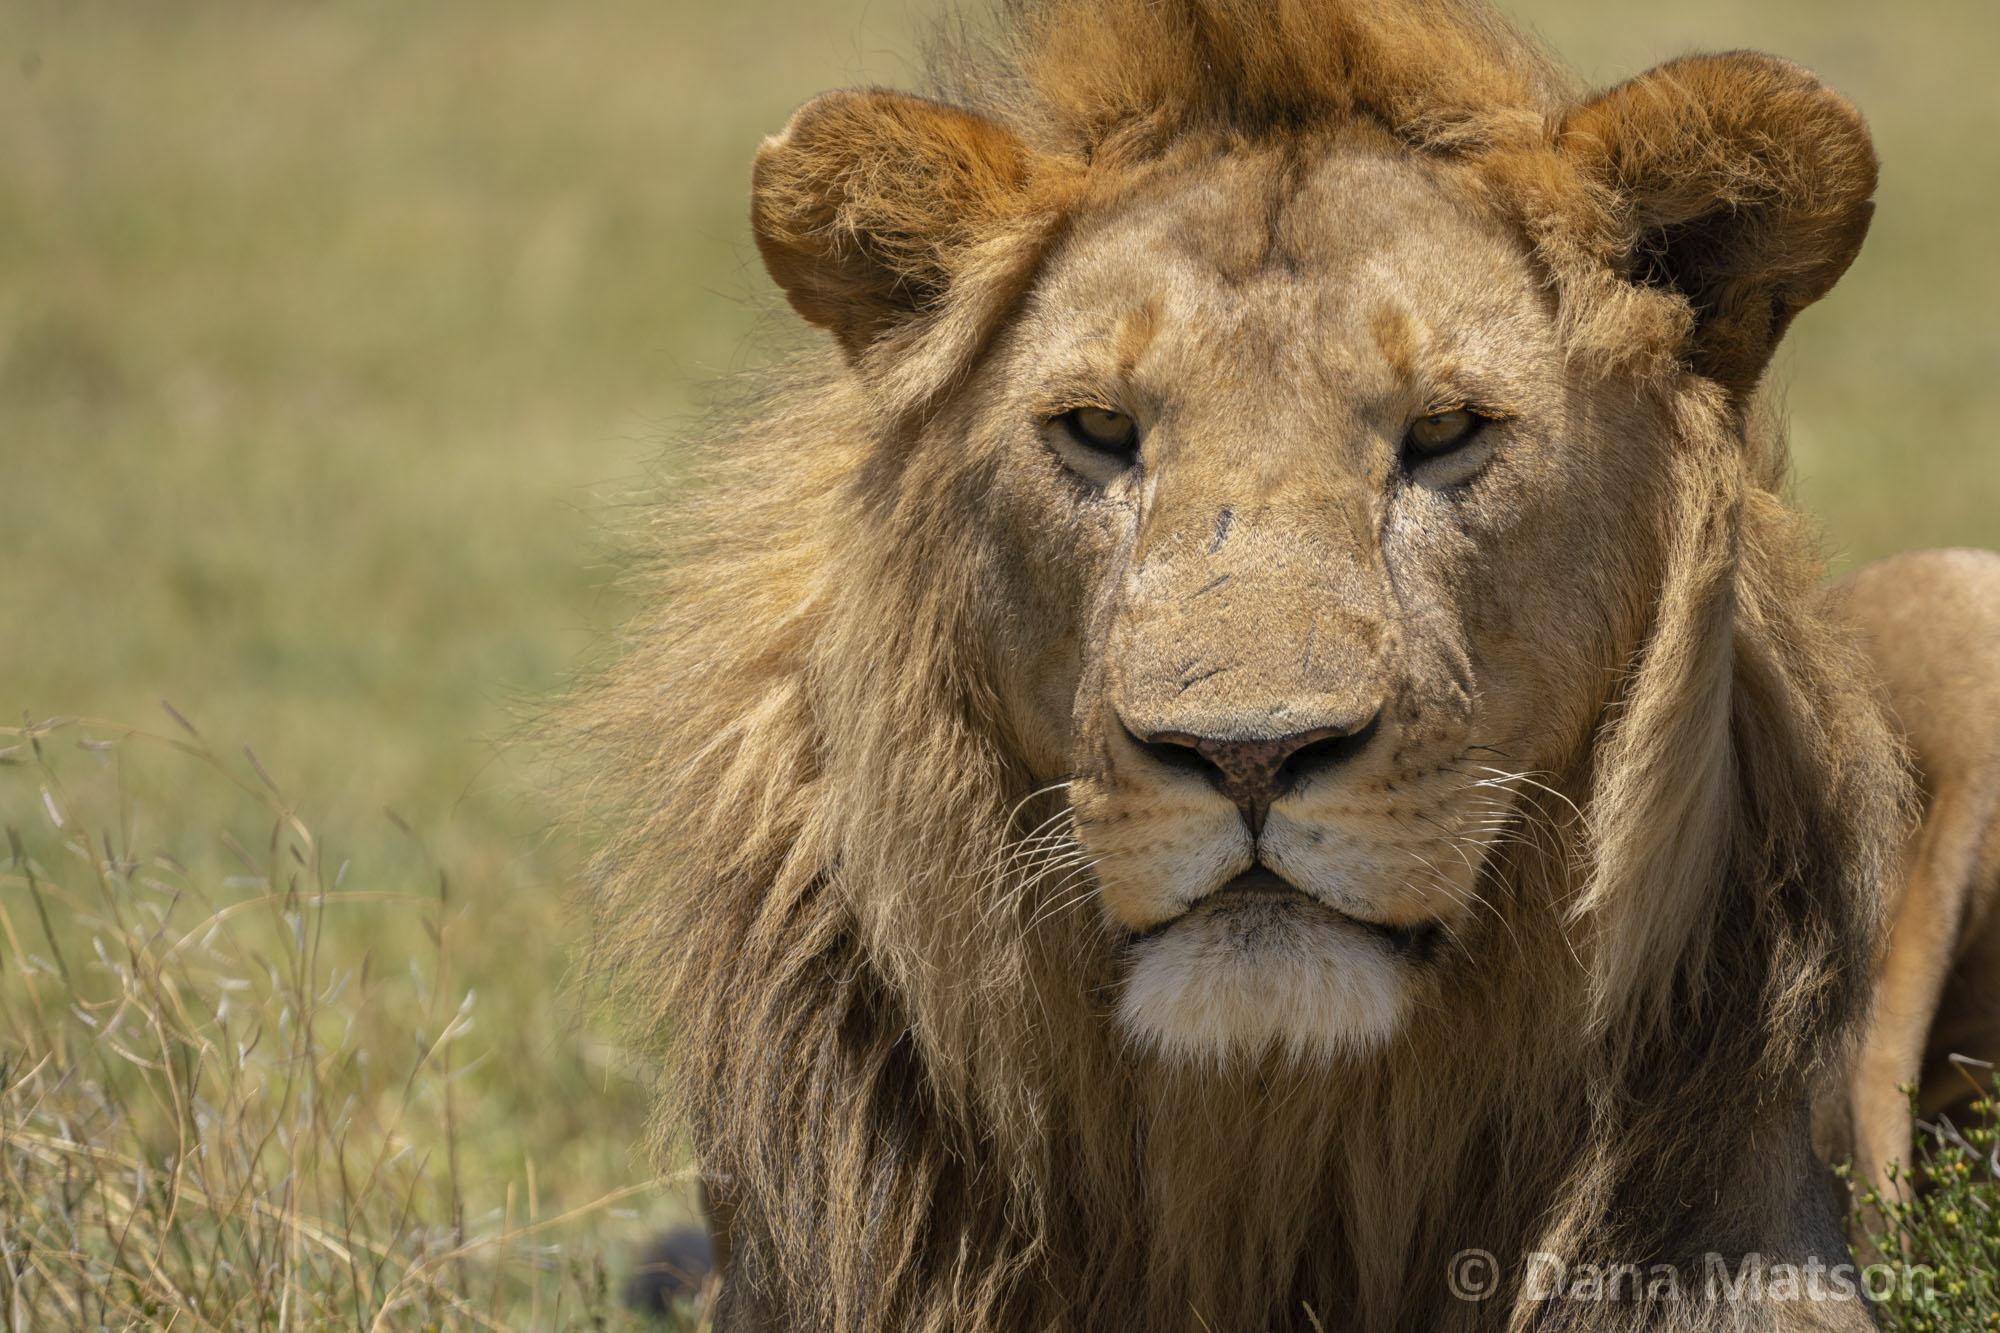 Lion Looking at the Camera